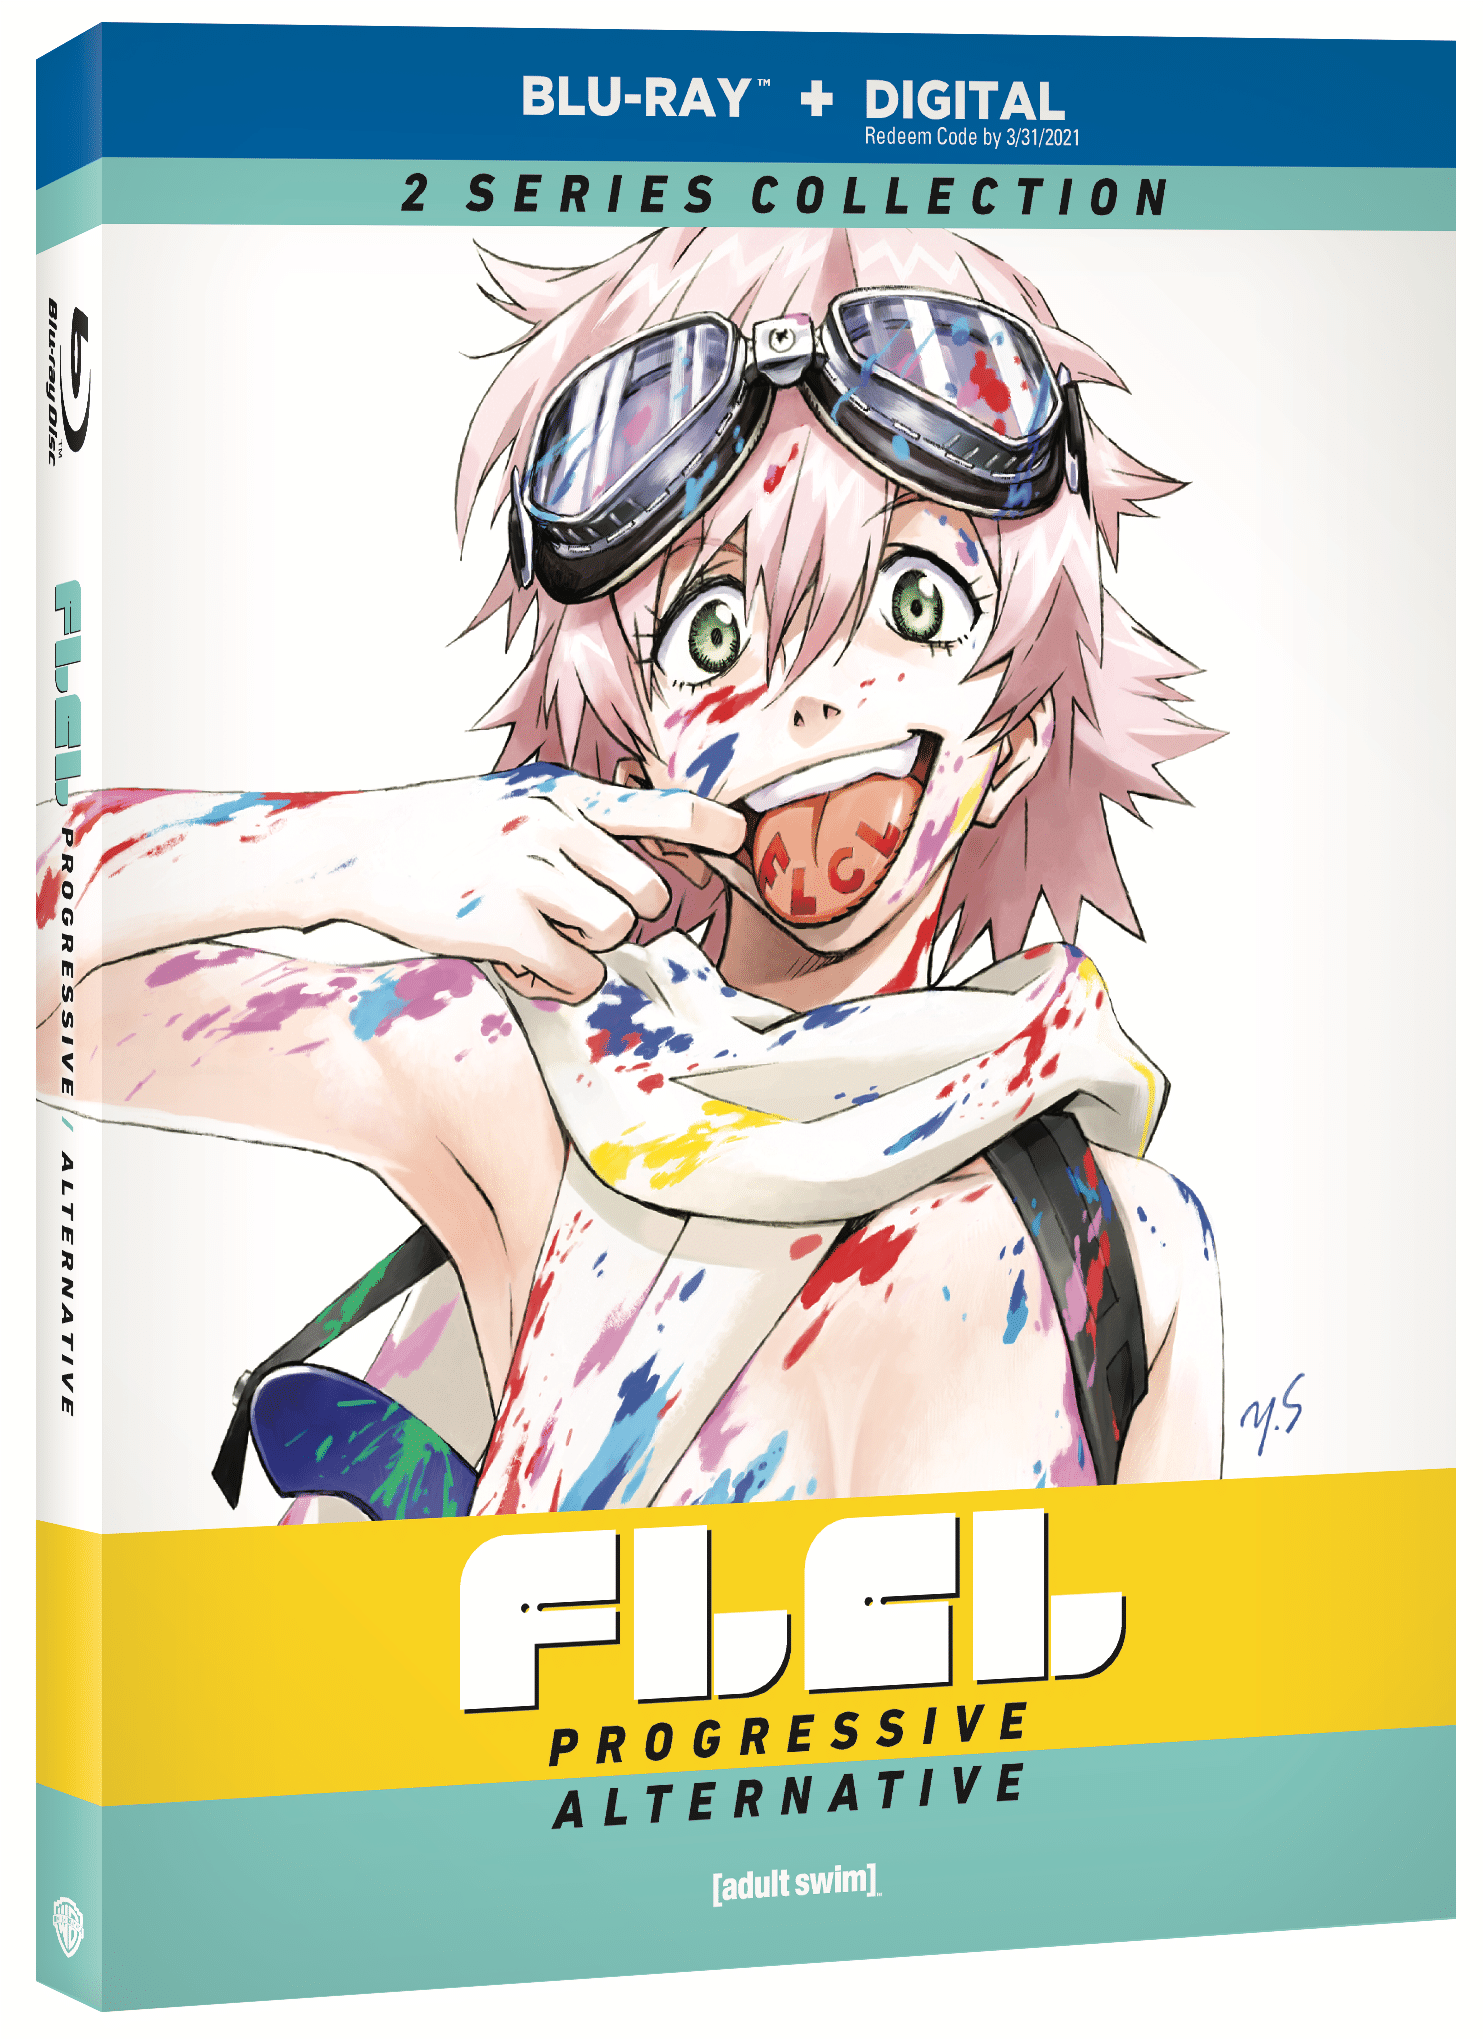 FLCL: PROGRESSIVE & ALTERNATIVE COMBO PACK – comes home to Blu-Ray/DVD